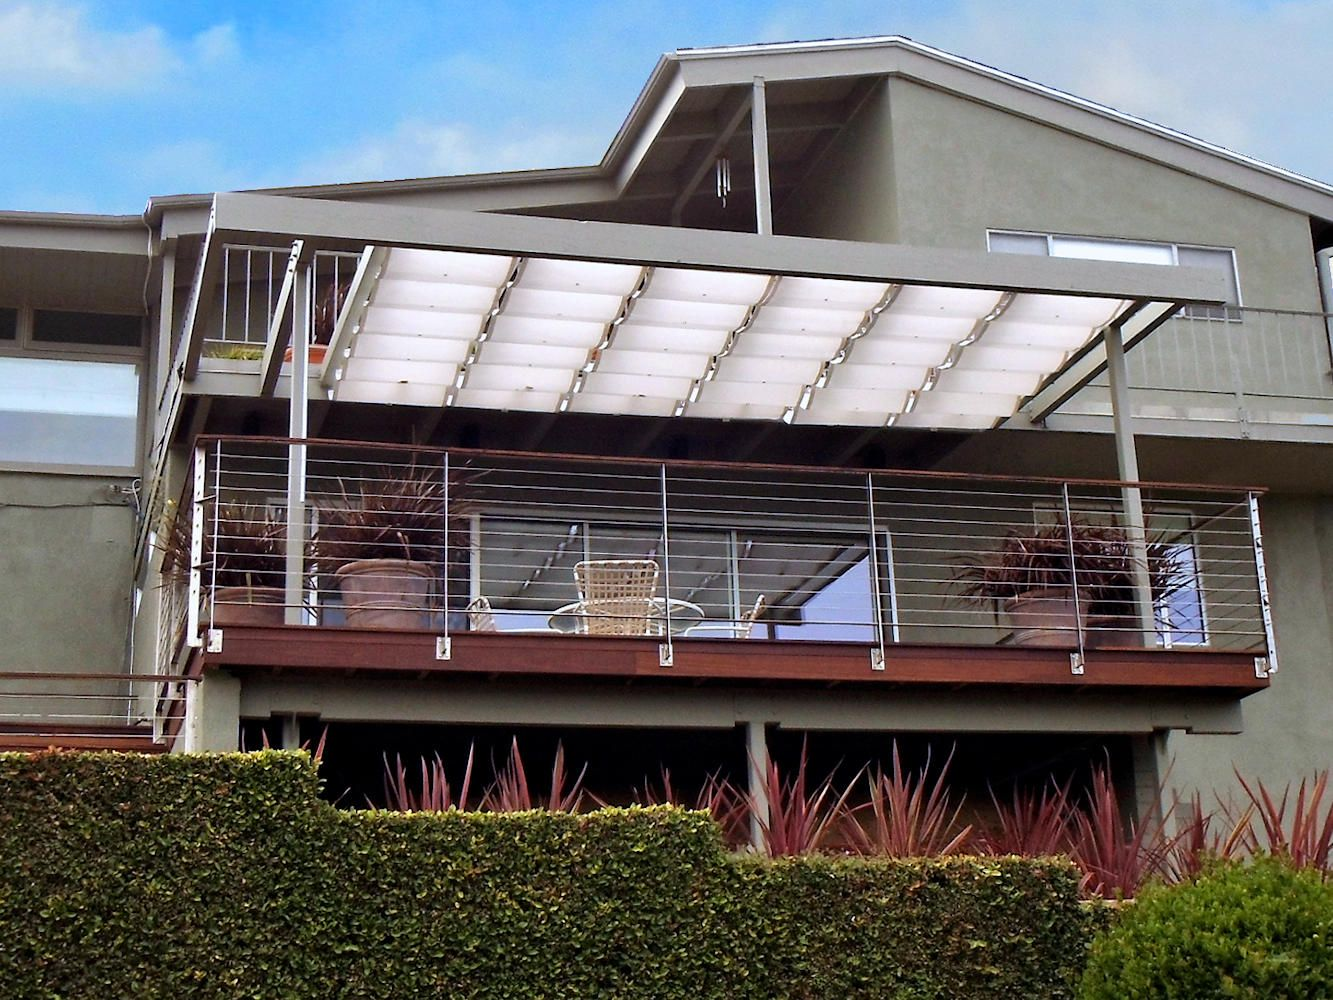 Slide Wire Cable Awnings | Superior Awning - Part 2 | cobertura ...